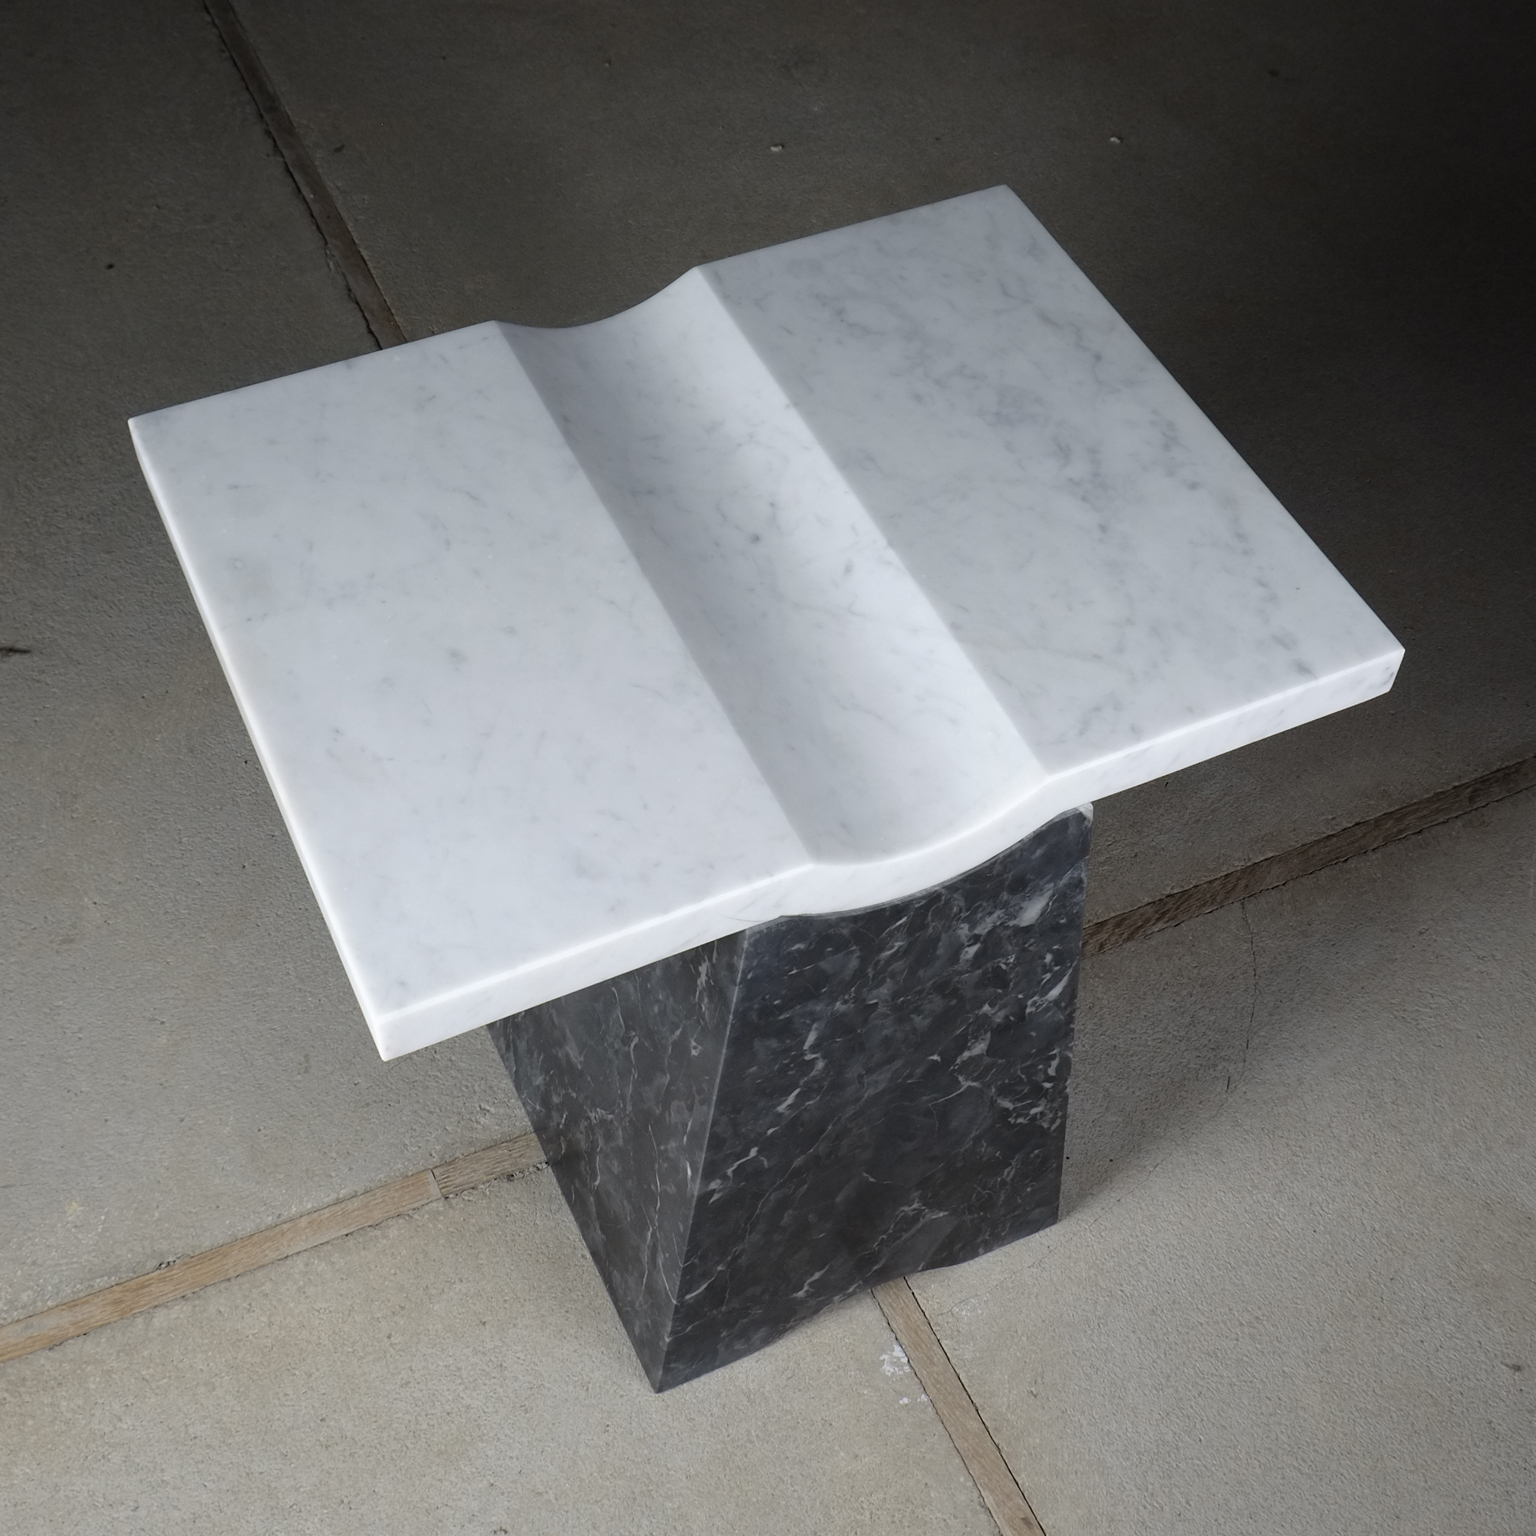 Coulee Side Table - <p>The distinguishing feature of the Coulee side table is the subtle recessed curve, that can be used as an organiser and container for displaying small goods, coins, cell phone, keys, flowers. Coulee uses two heavyweight pieces, creating a stable structure by joining complimenting geometry where the table becomes a singular mass/volume/sculpture.<br /> Developed and Produced during the Matter of Stuff Designer Residency program in Montalcino</p>  | Matter of Stuff